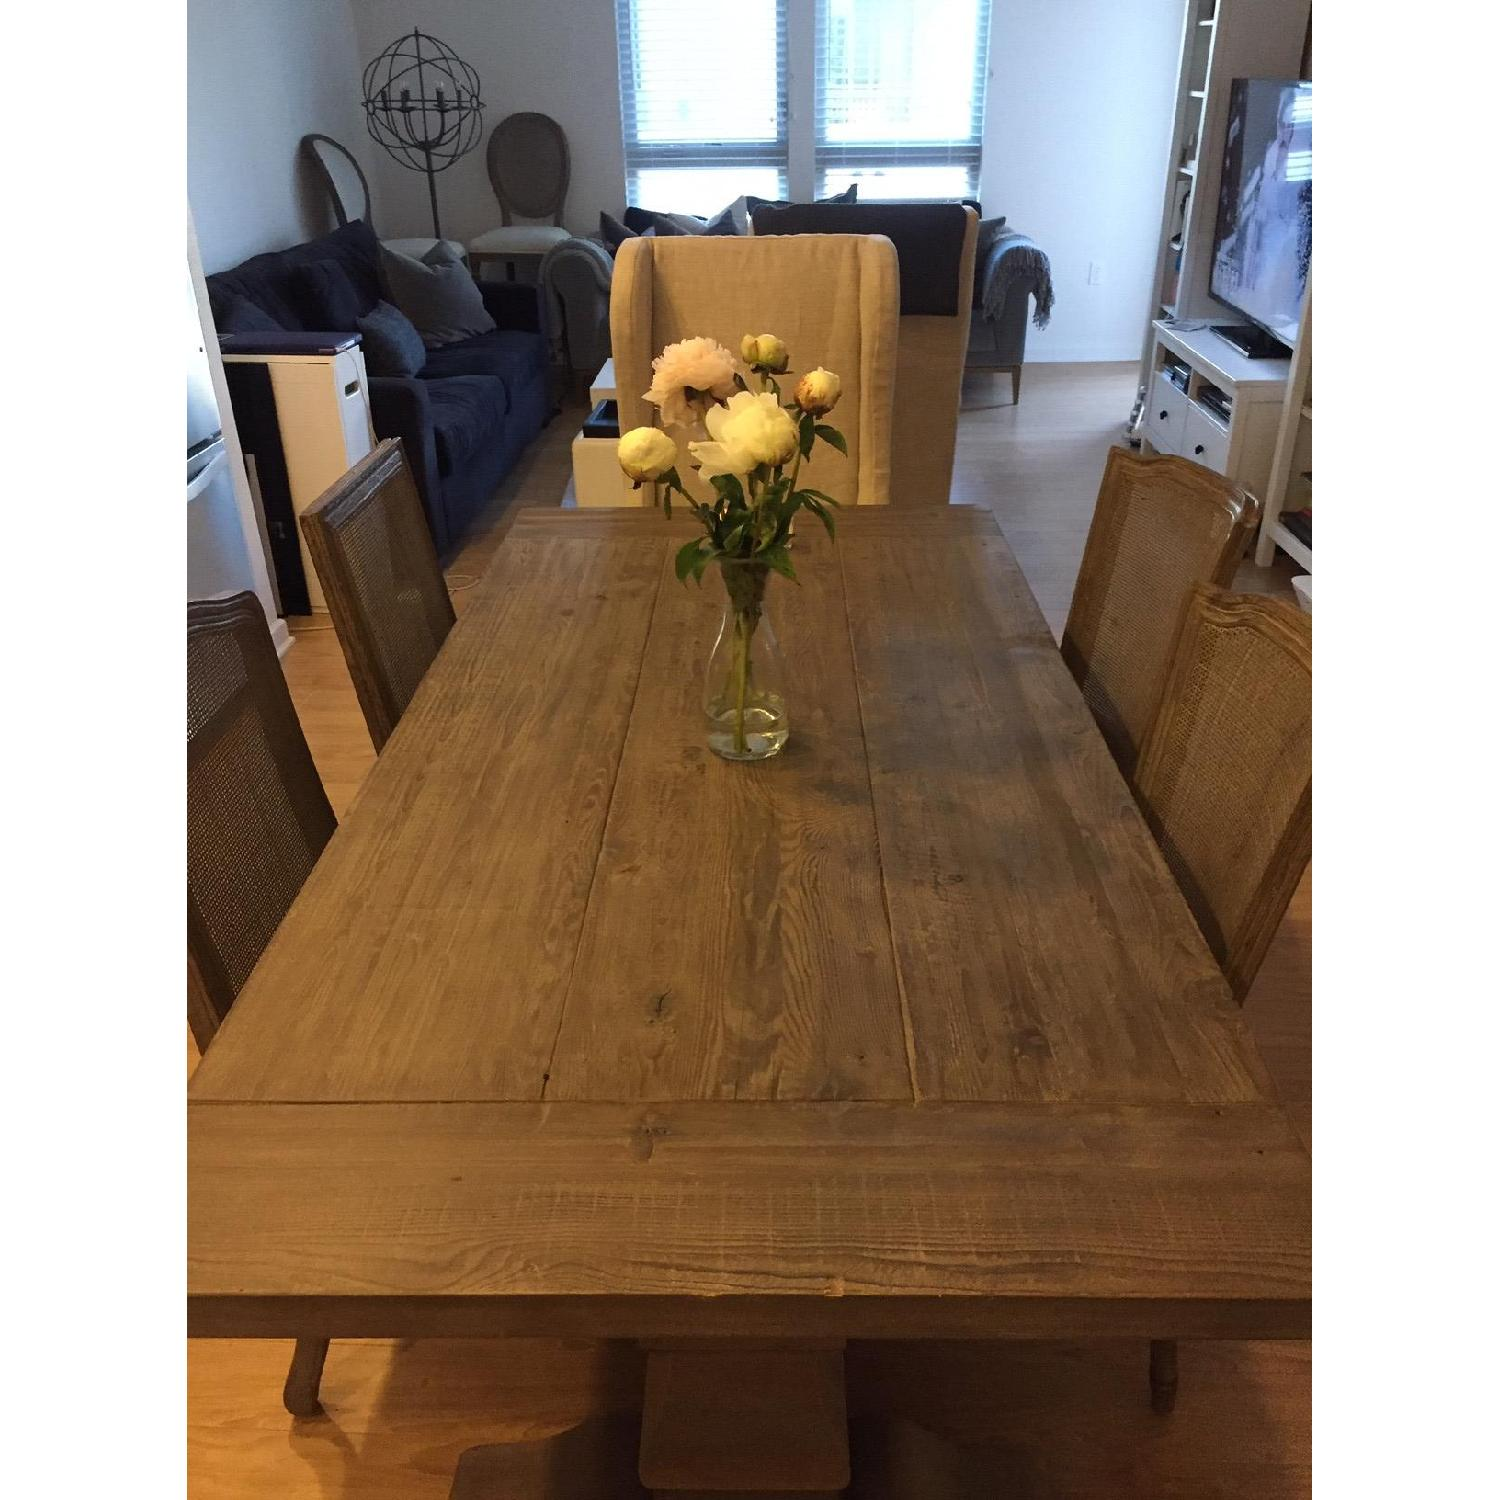 Restoration Hardware Salvaged Wood Dining Table w/ 4 Chairs - image-1